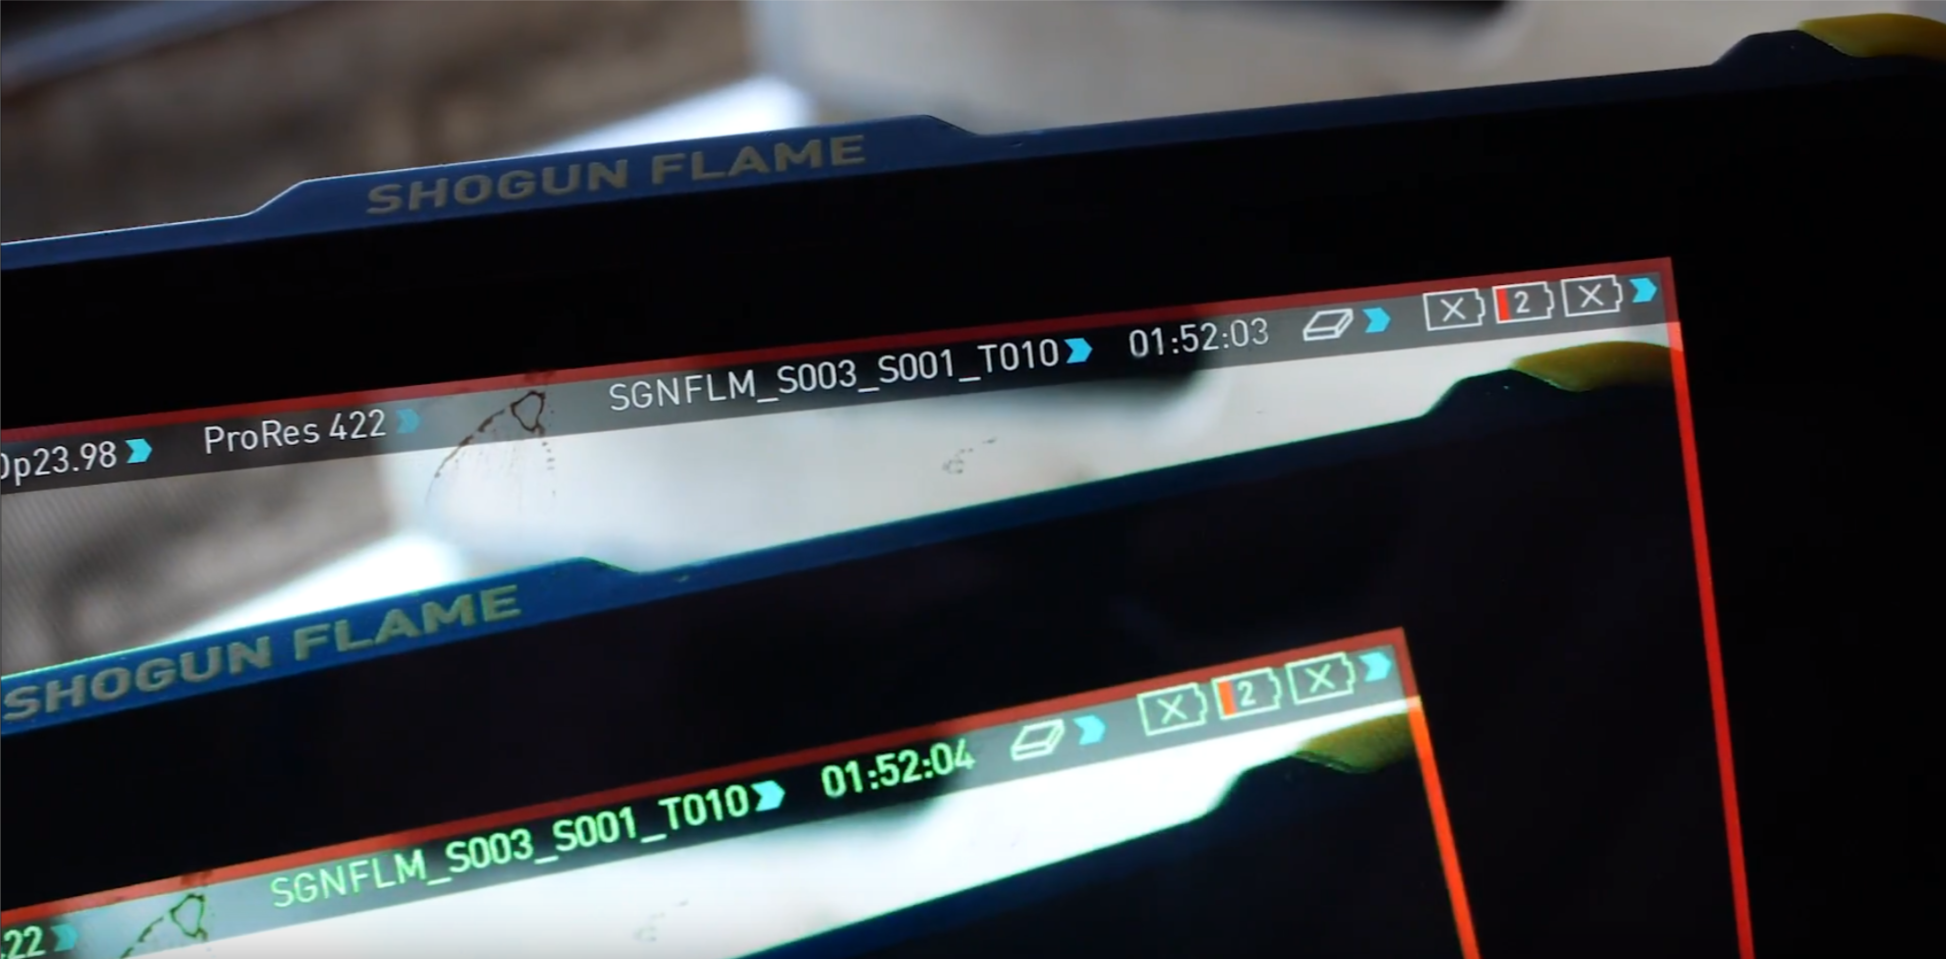 Recording codecs are easy to overlook, but can greatly improve your post production workflow and editing experience.